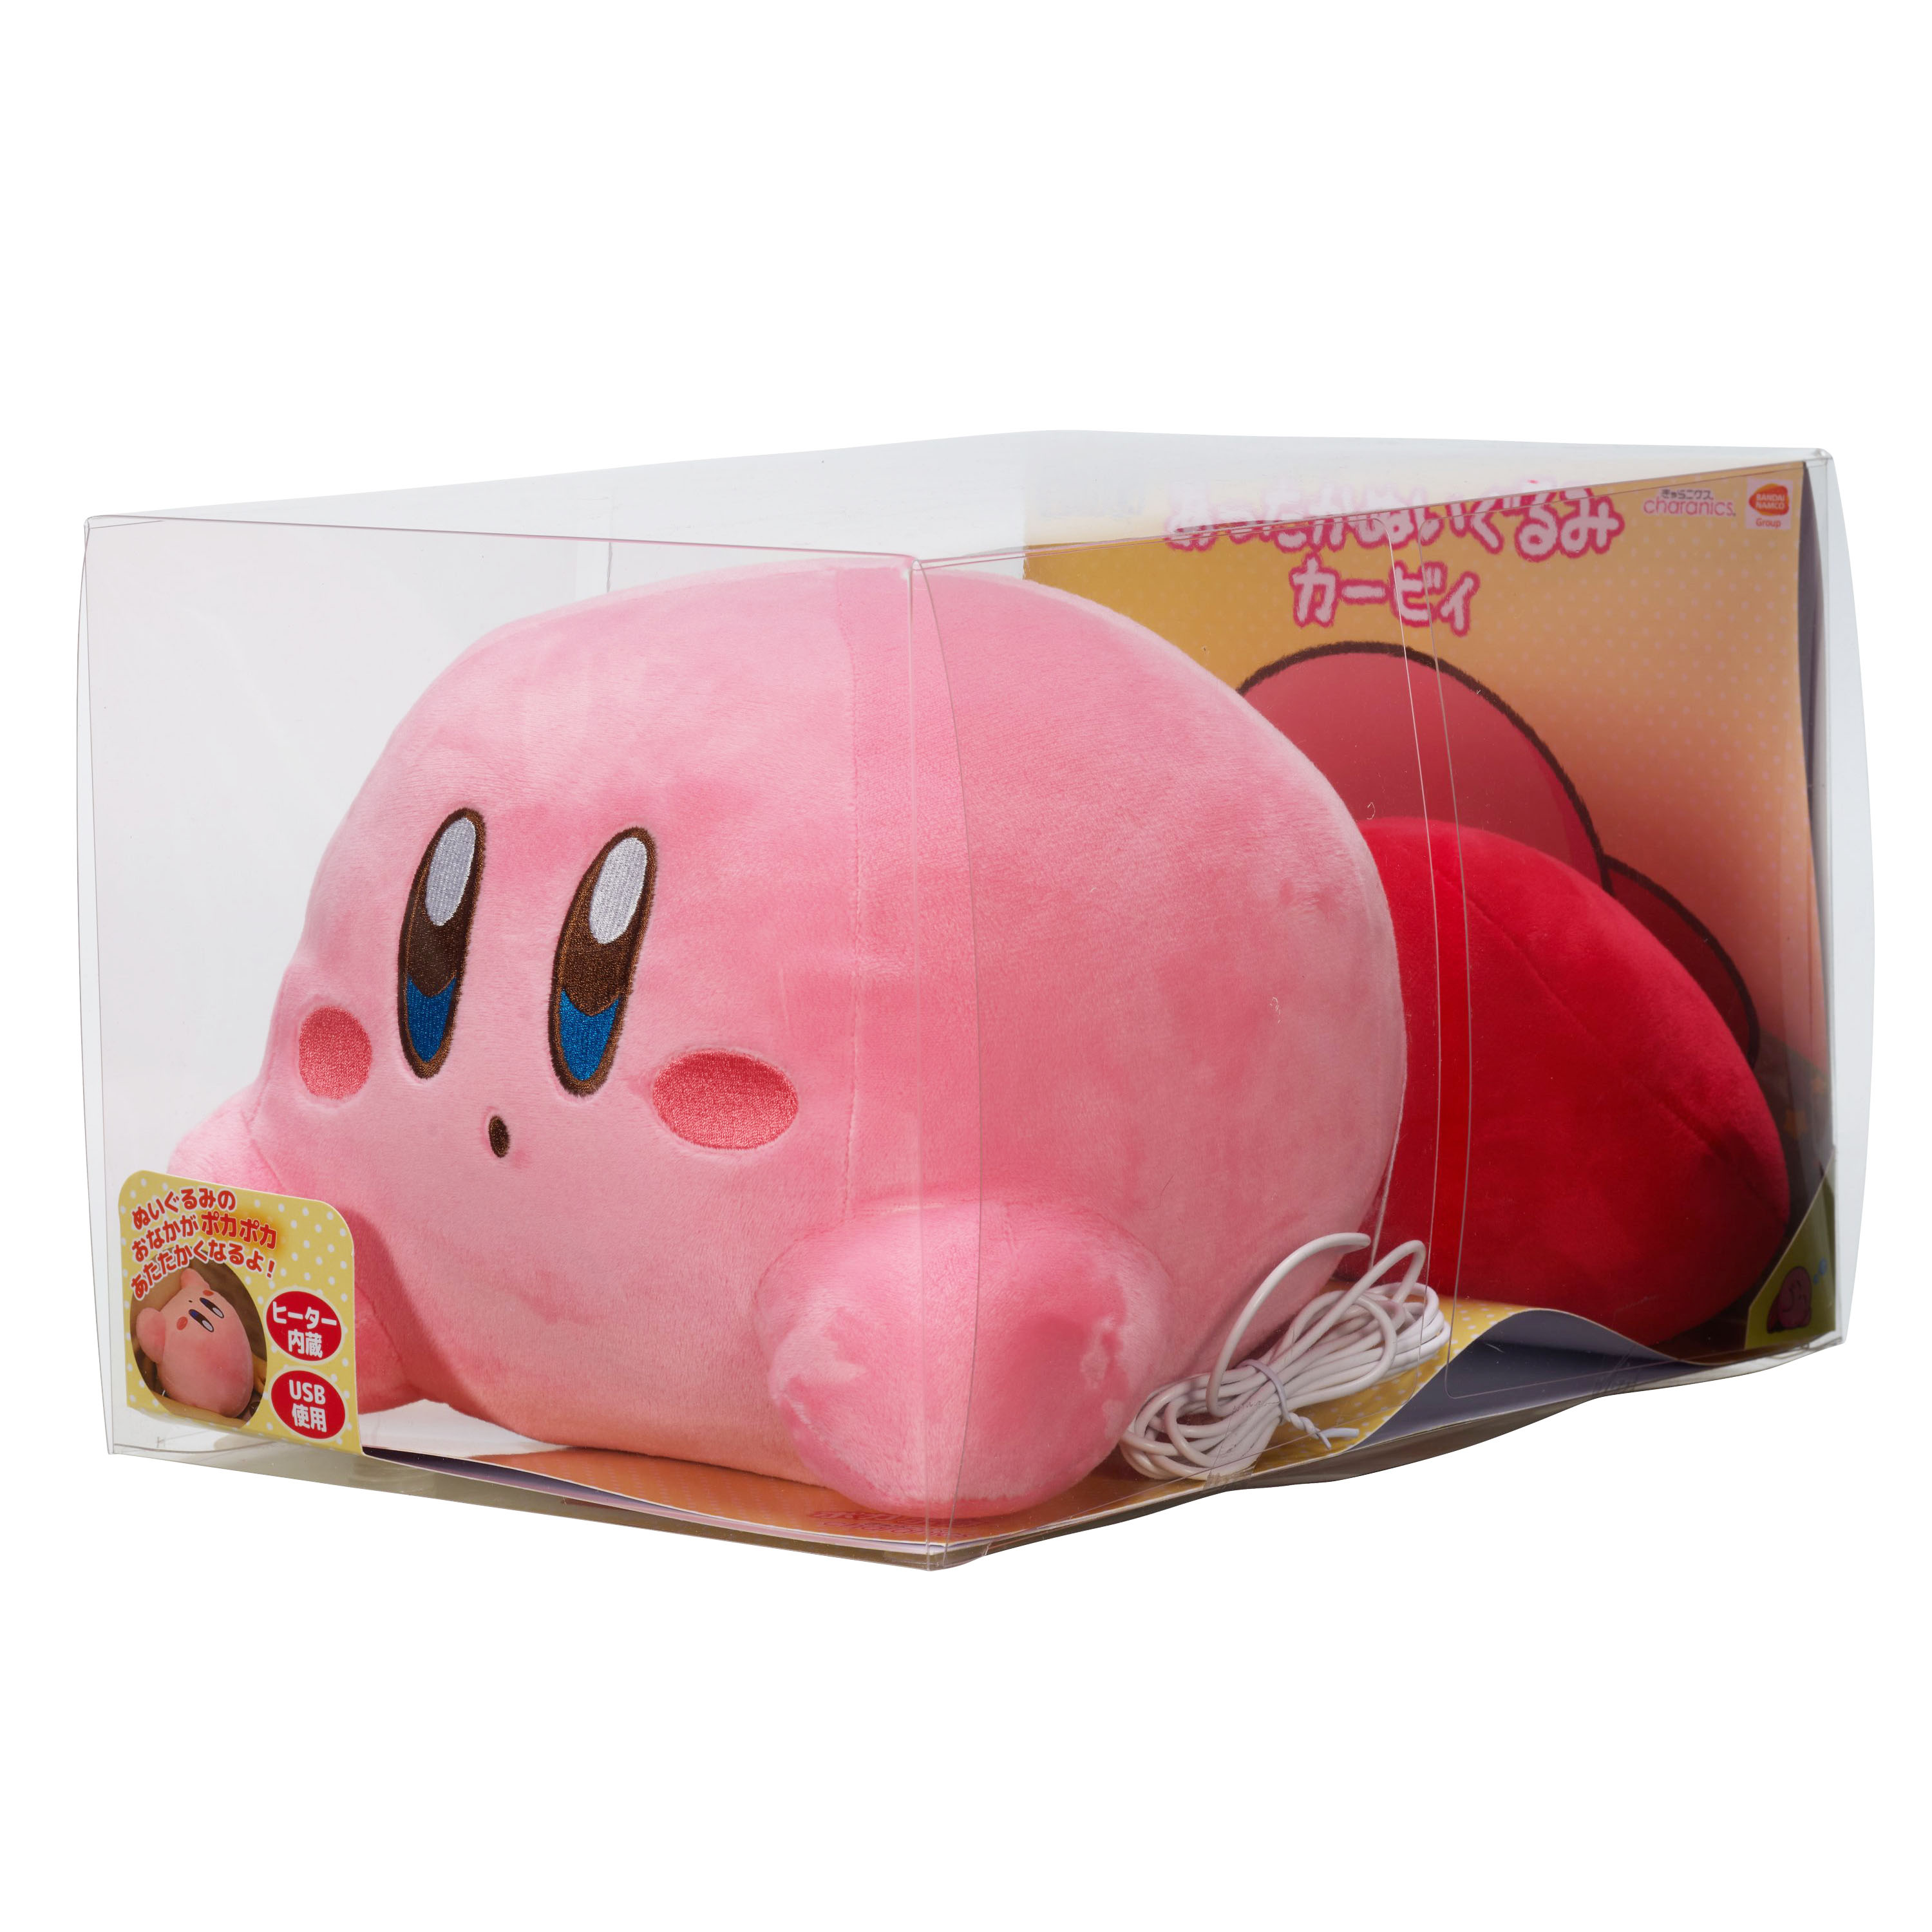 KIRBY PLUSH USB WARMER (March 2022 Delivery)